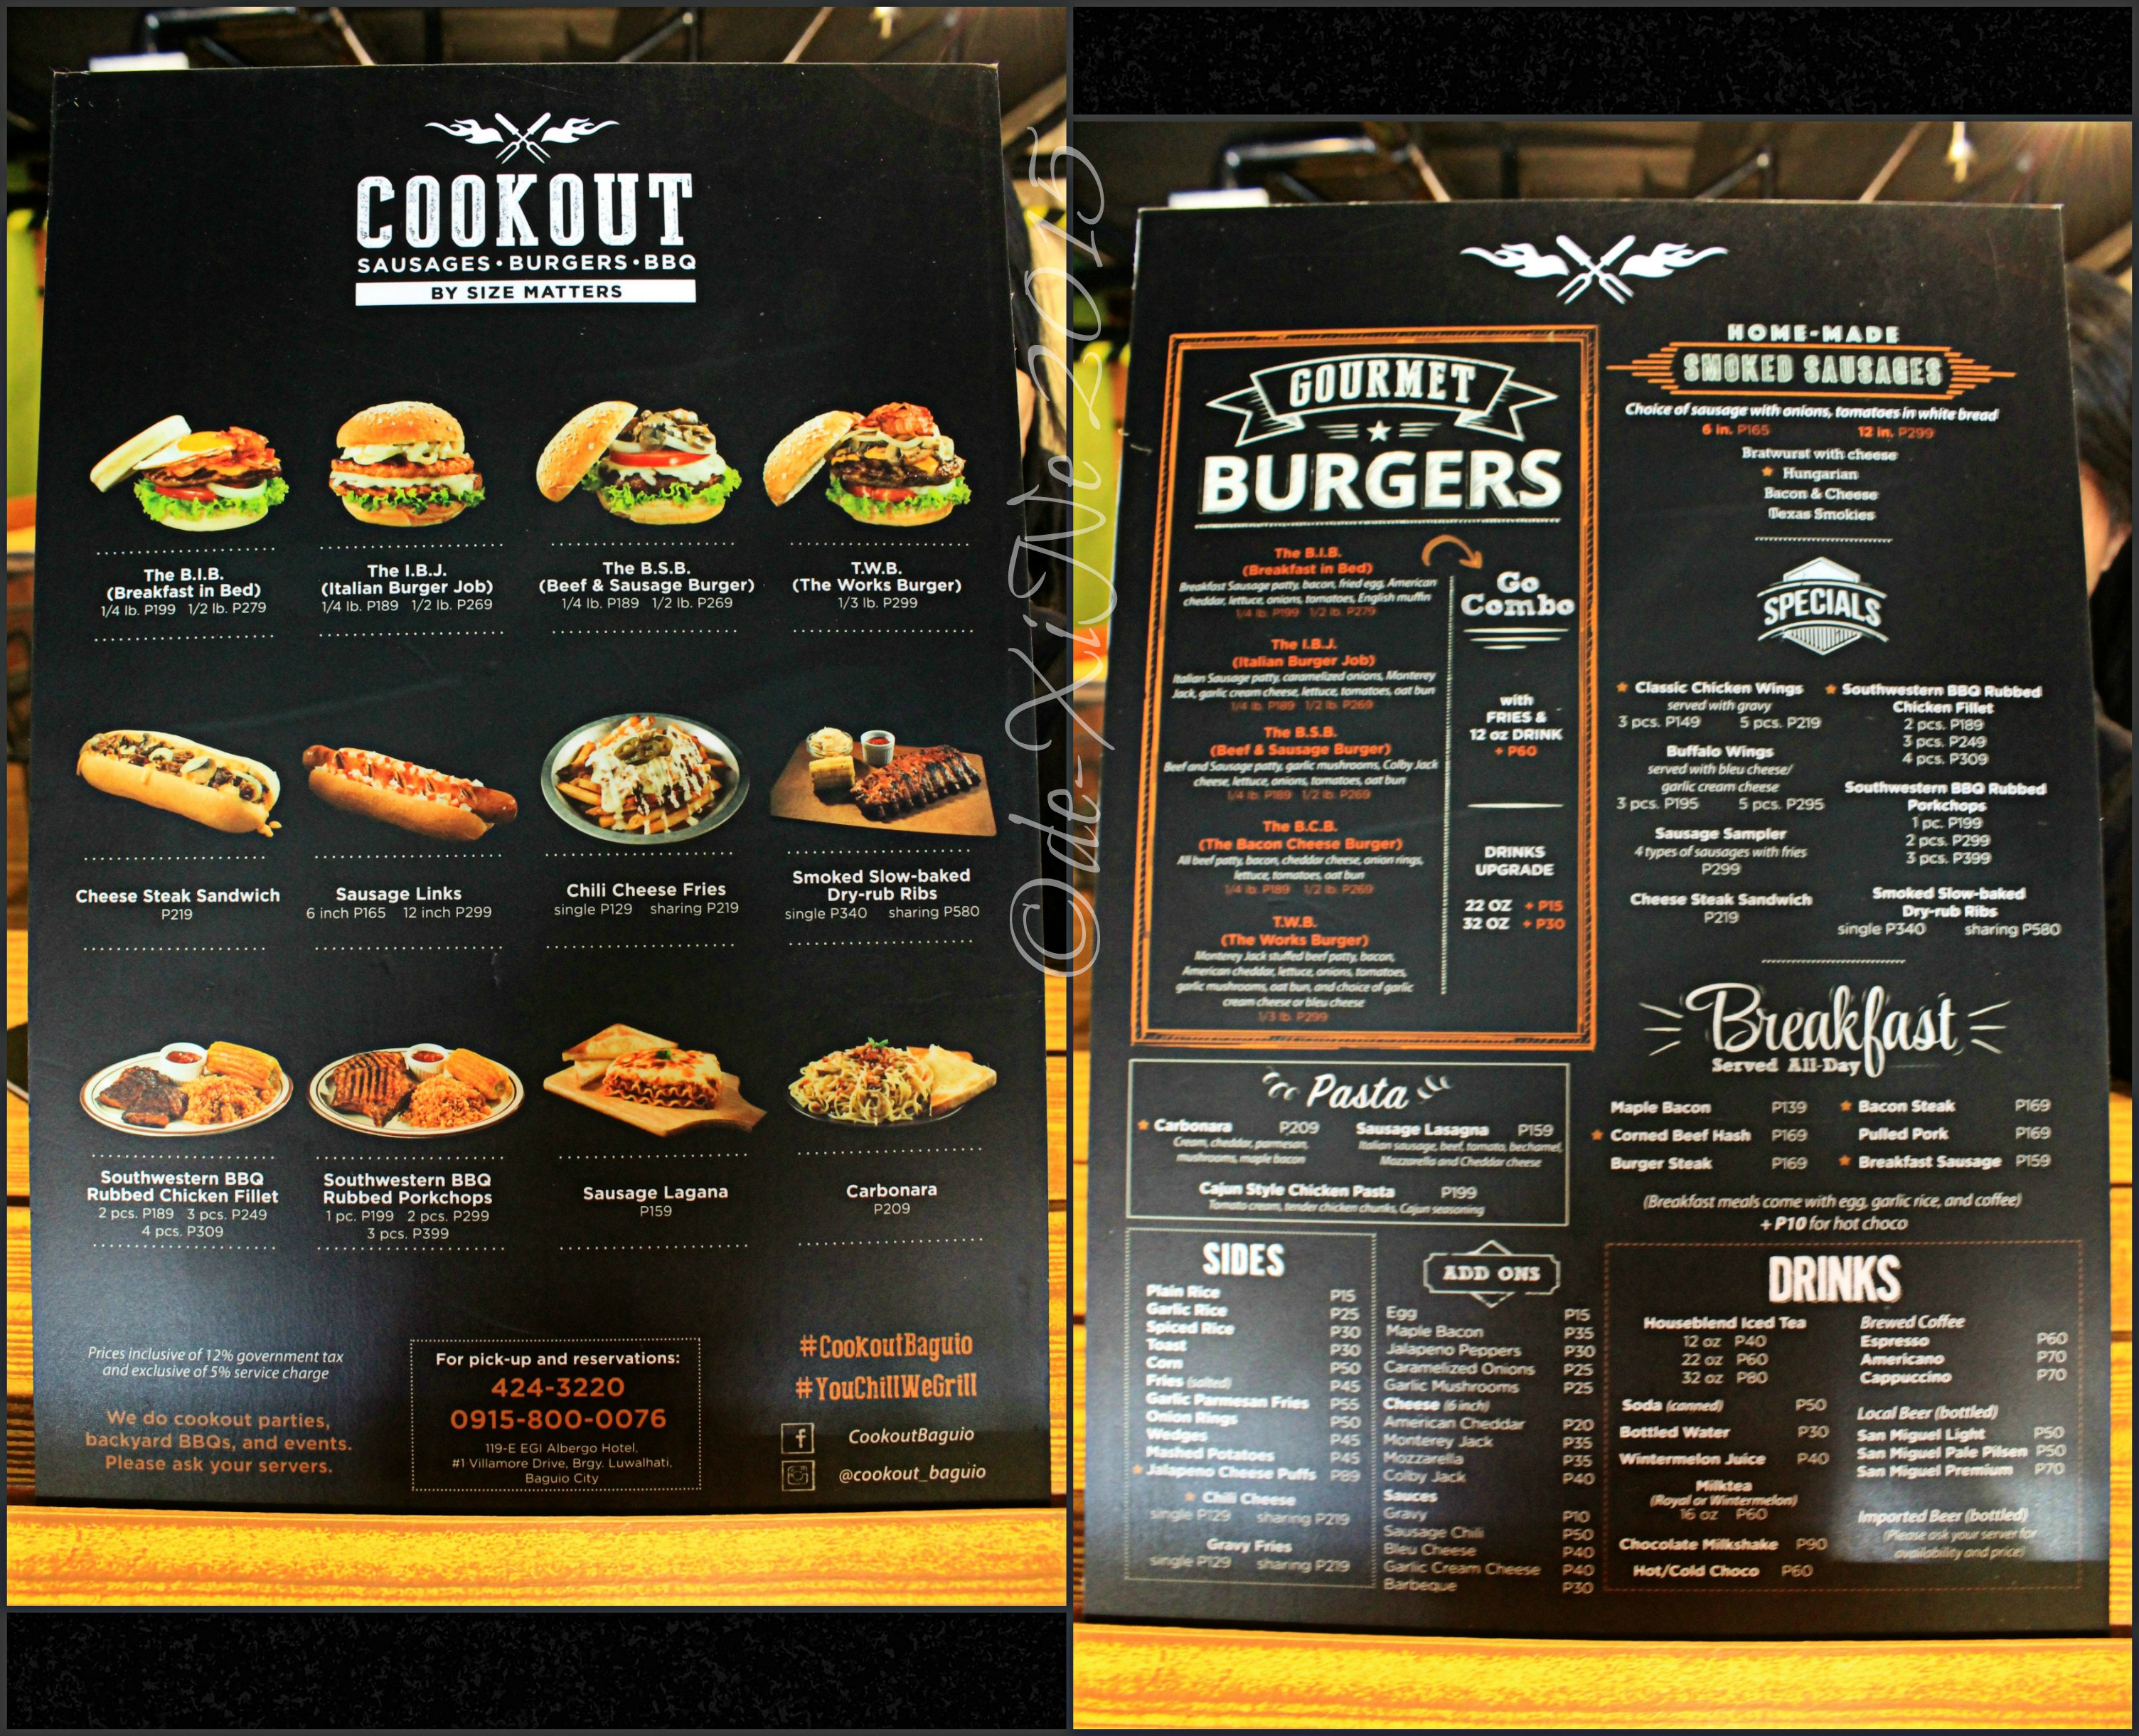 baguio cookout by size matters menu | x marks the spot for good